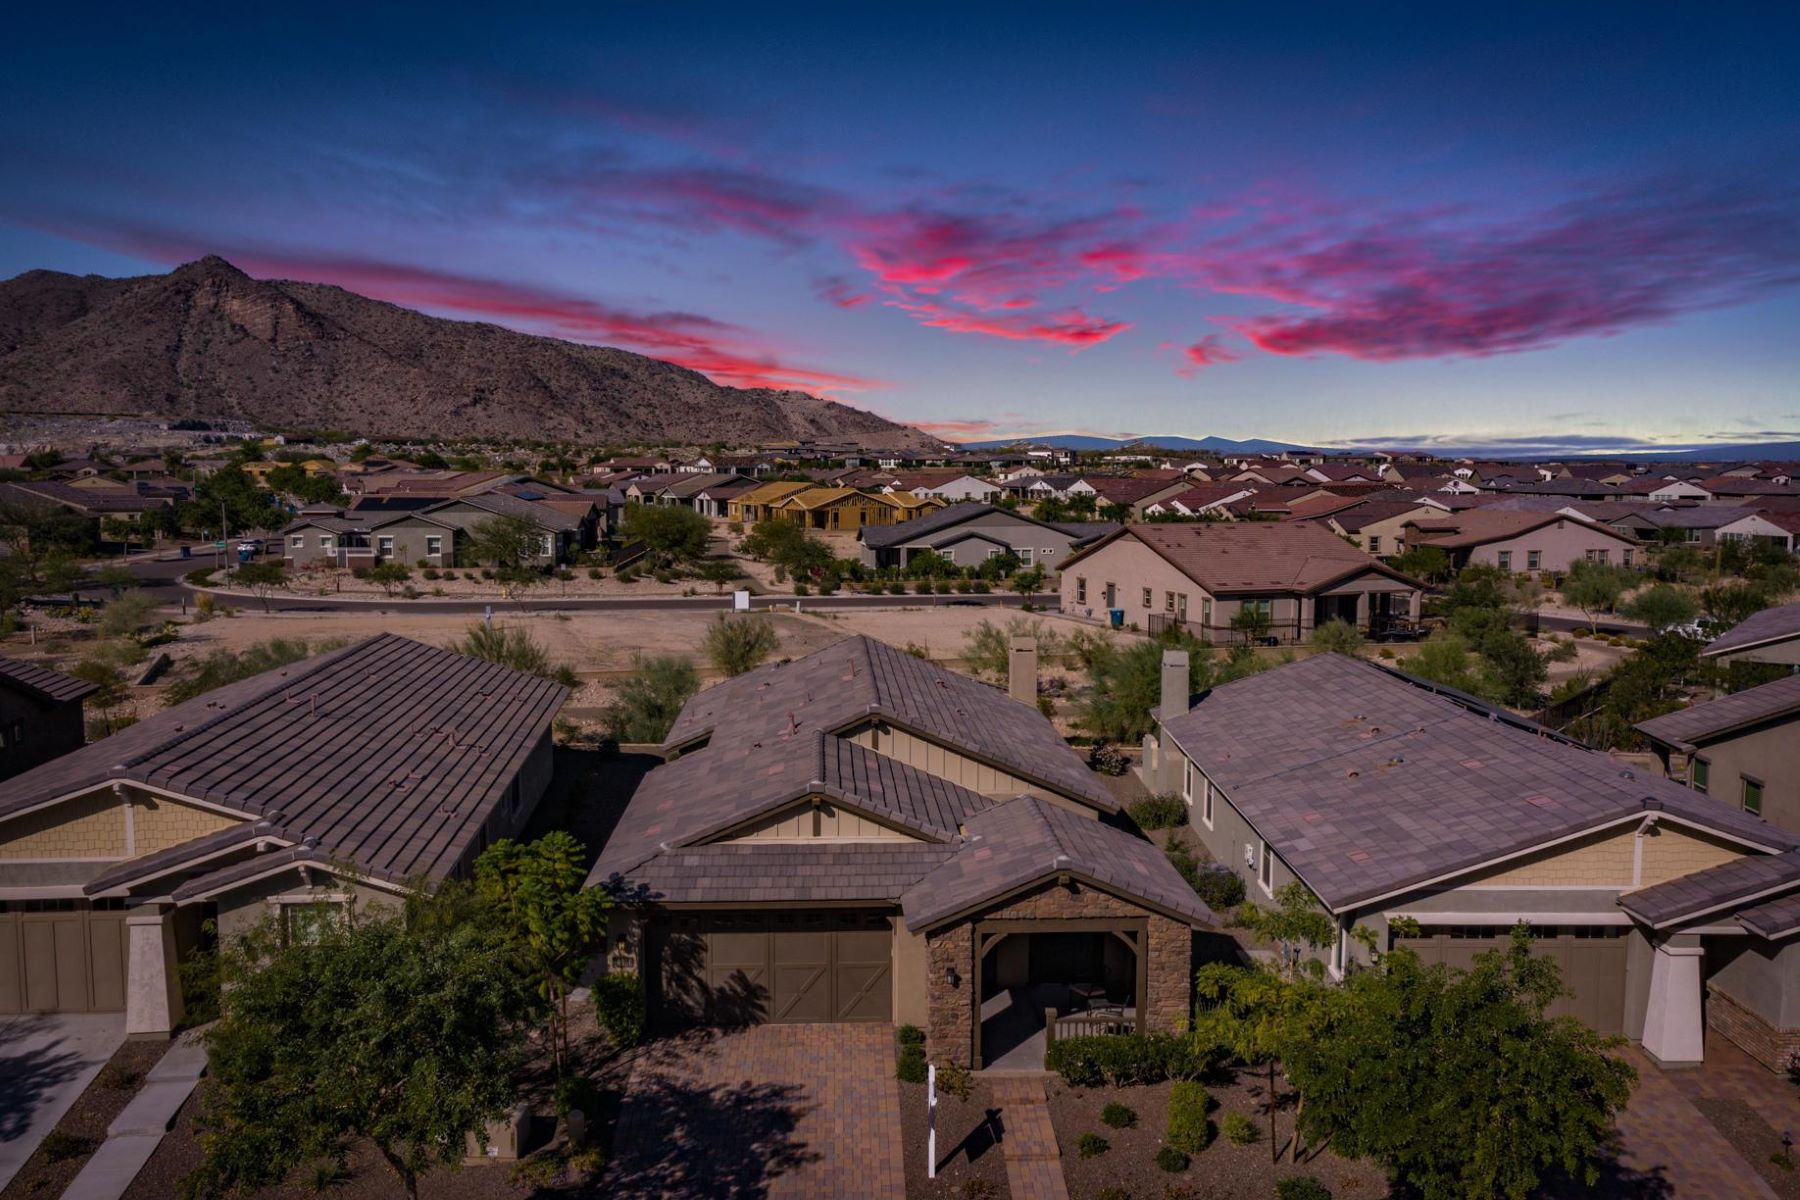 Single Family Homes for Sale at Victory at Verrado 20786 W MEADOWBROOK AVE Buckeye, Arizona 85396 United States